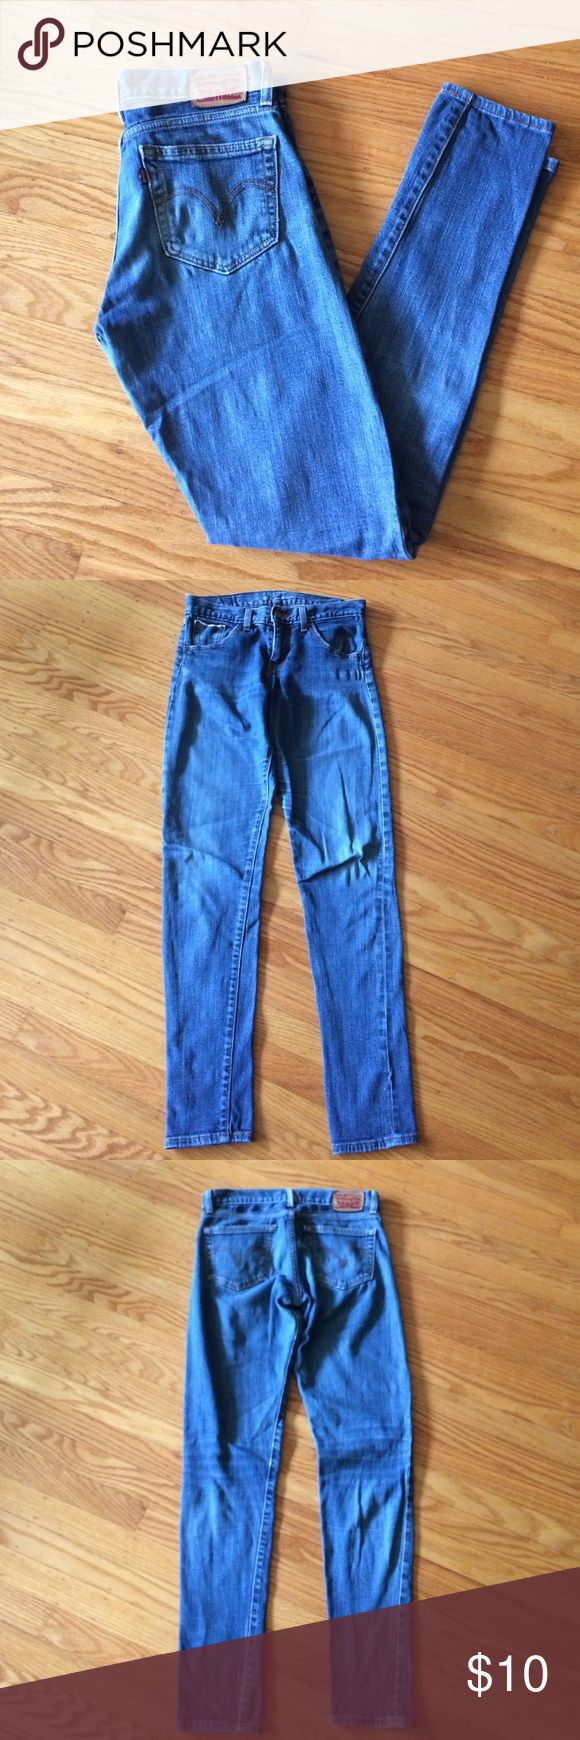 "👖LEVI'S 26 Boyfriend Skinny Fit Jeans W30, L31!!! Selling cheap! Levi's ""26 Boyfriend Skinny Fit"" Jeans. In well-worn condition. Seams wanting to come apart a little but will hold up for many more miles of wear. Waist measures 30 inches and inseam is approx. 31 inches. A good pair of ""kick-around"" jeans. No holes, rips, etc. Bundle these with other items from my closet to save 💰💰💰. Thank you for shopping here! I 💖my Posher Pals! Levi's Jeans Boyfriend"